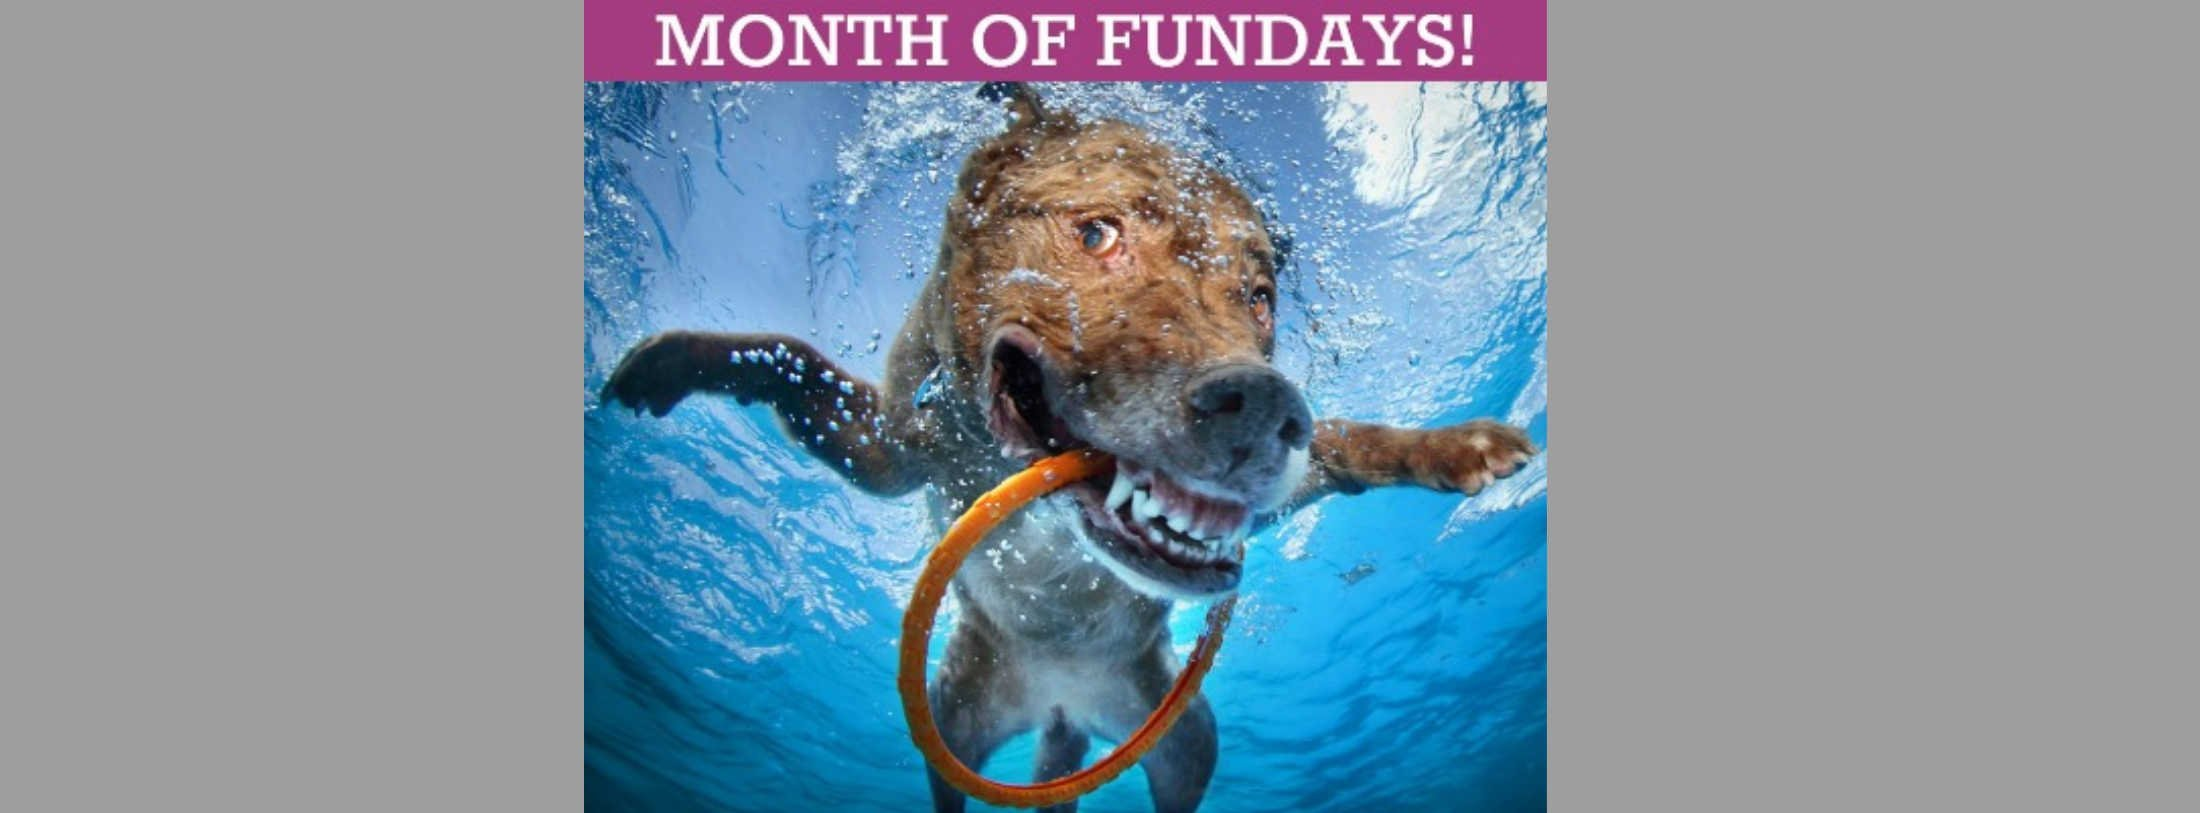 MONTH OF FUNDAYS November 2019: Fun Times & Cool Events on the Delmarva Peninsula